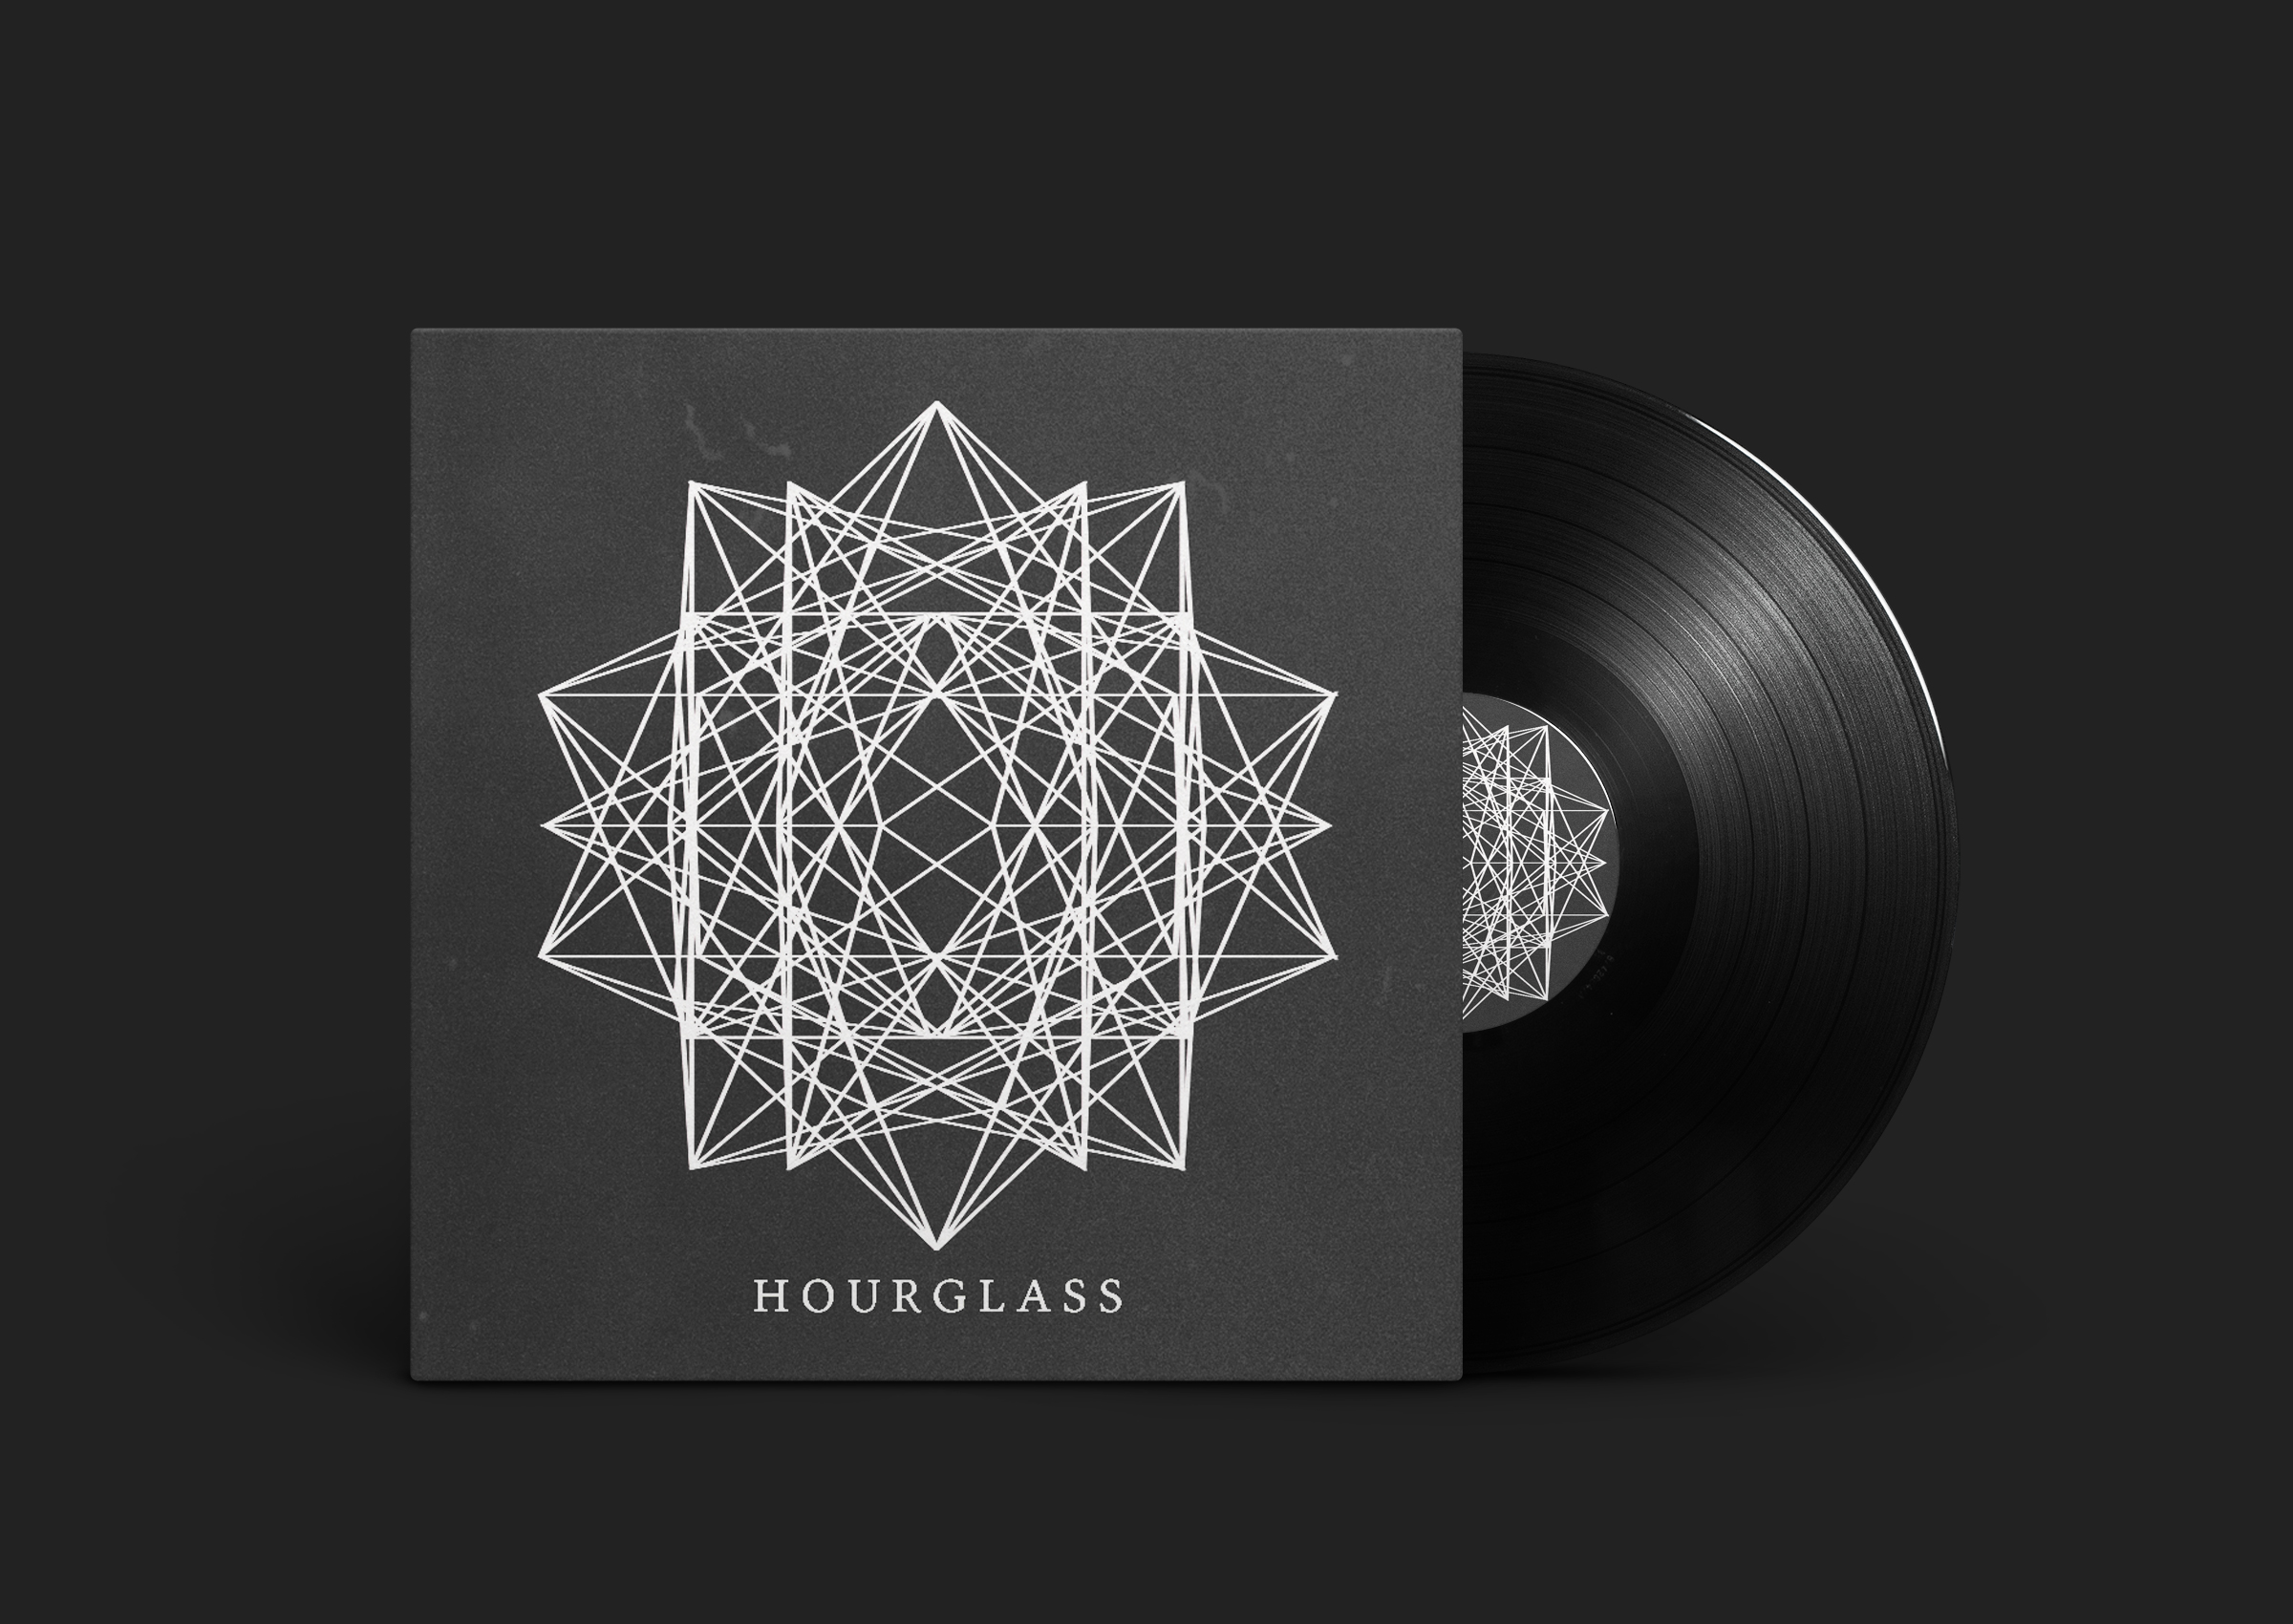 Hourglass by Heybeard - Had the pleasure of doing the cover for Heybeard's (Sondre Kile Andersen) instrumental EP project 'Hourglass'. He only spent an hour on each song as a way to challenge himself and get creative! So I did the same for this cover.Listen to the tracks here 🎧